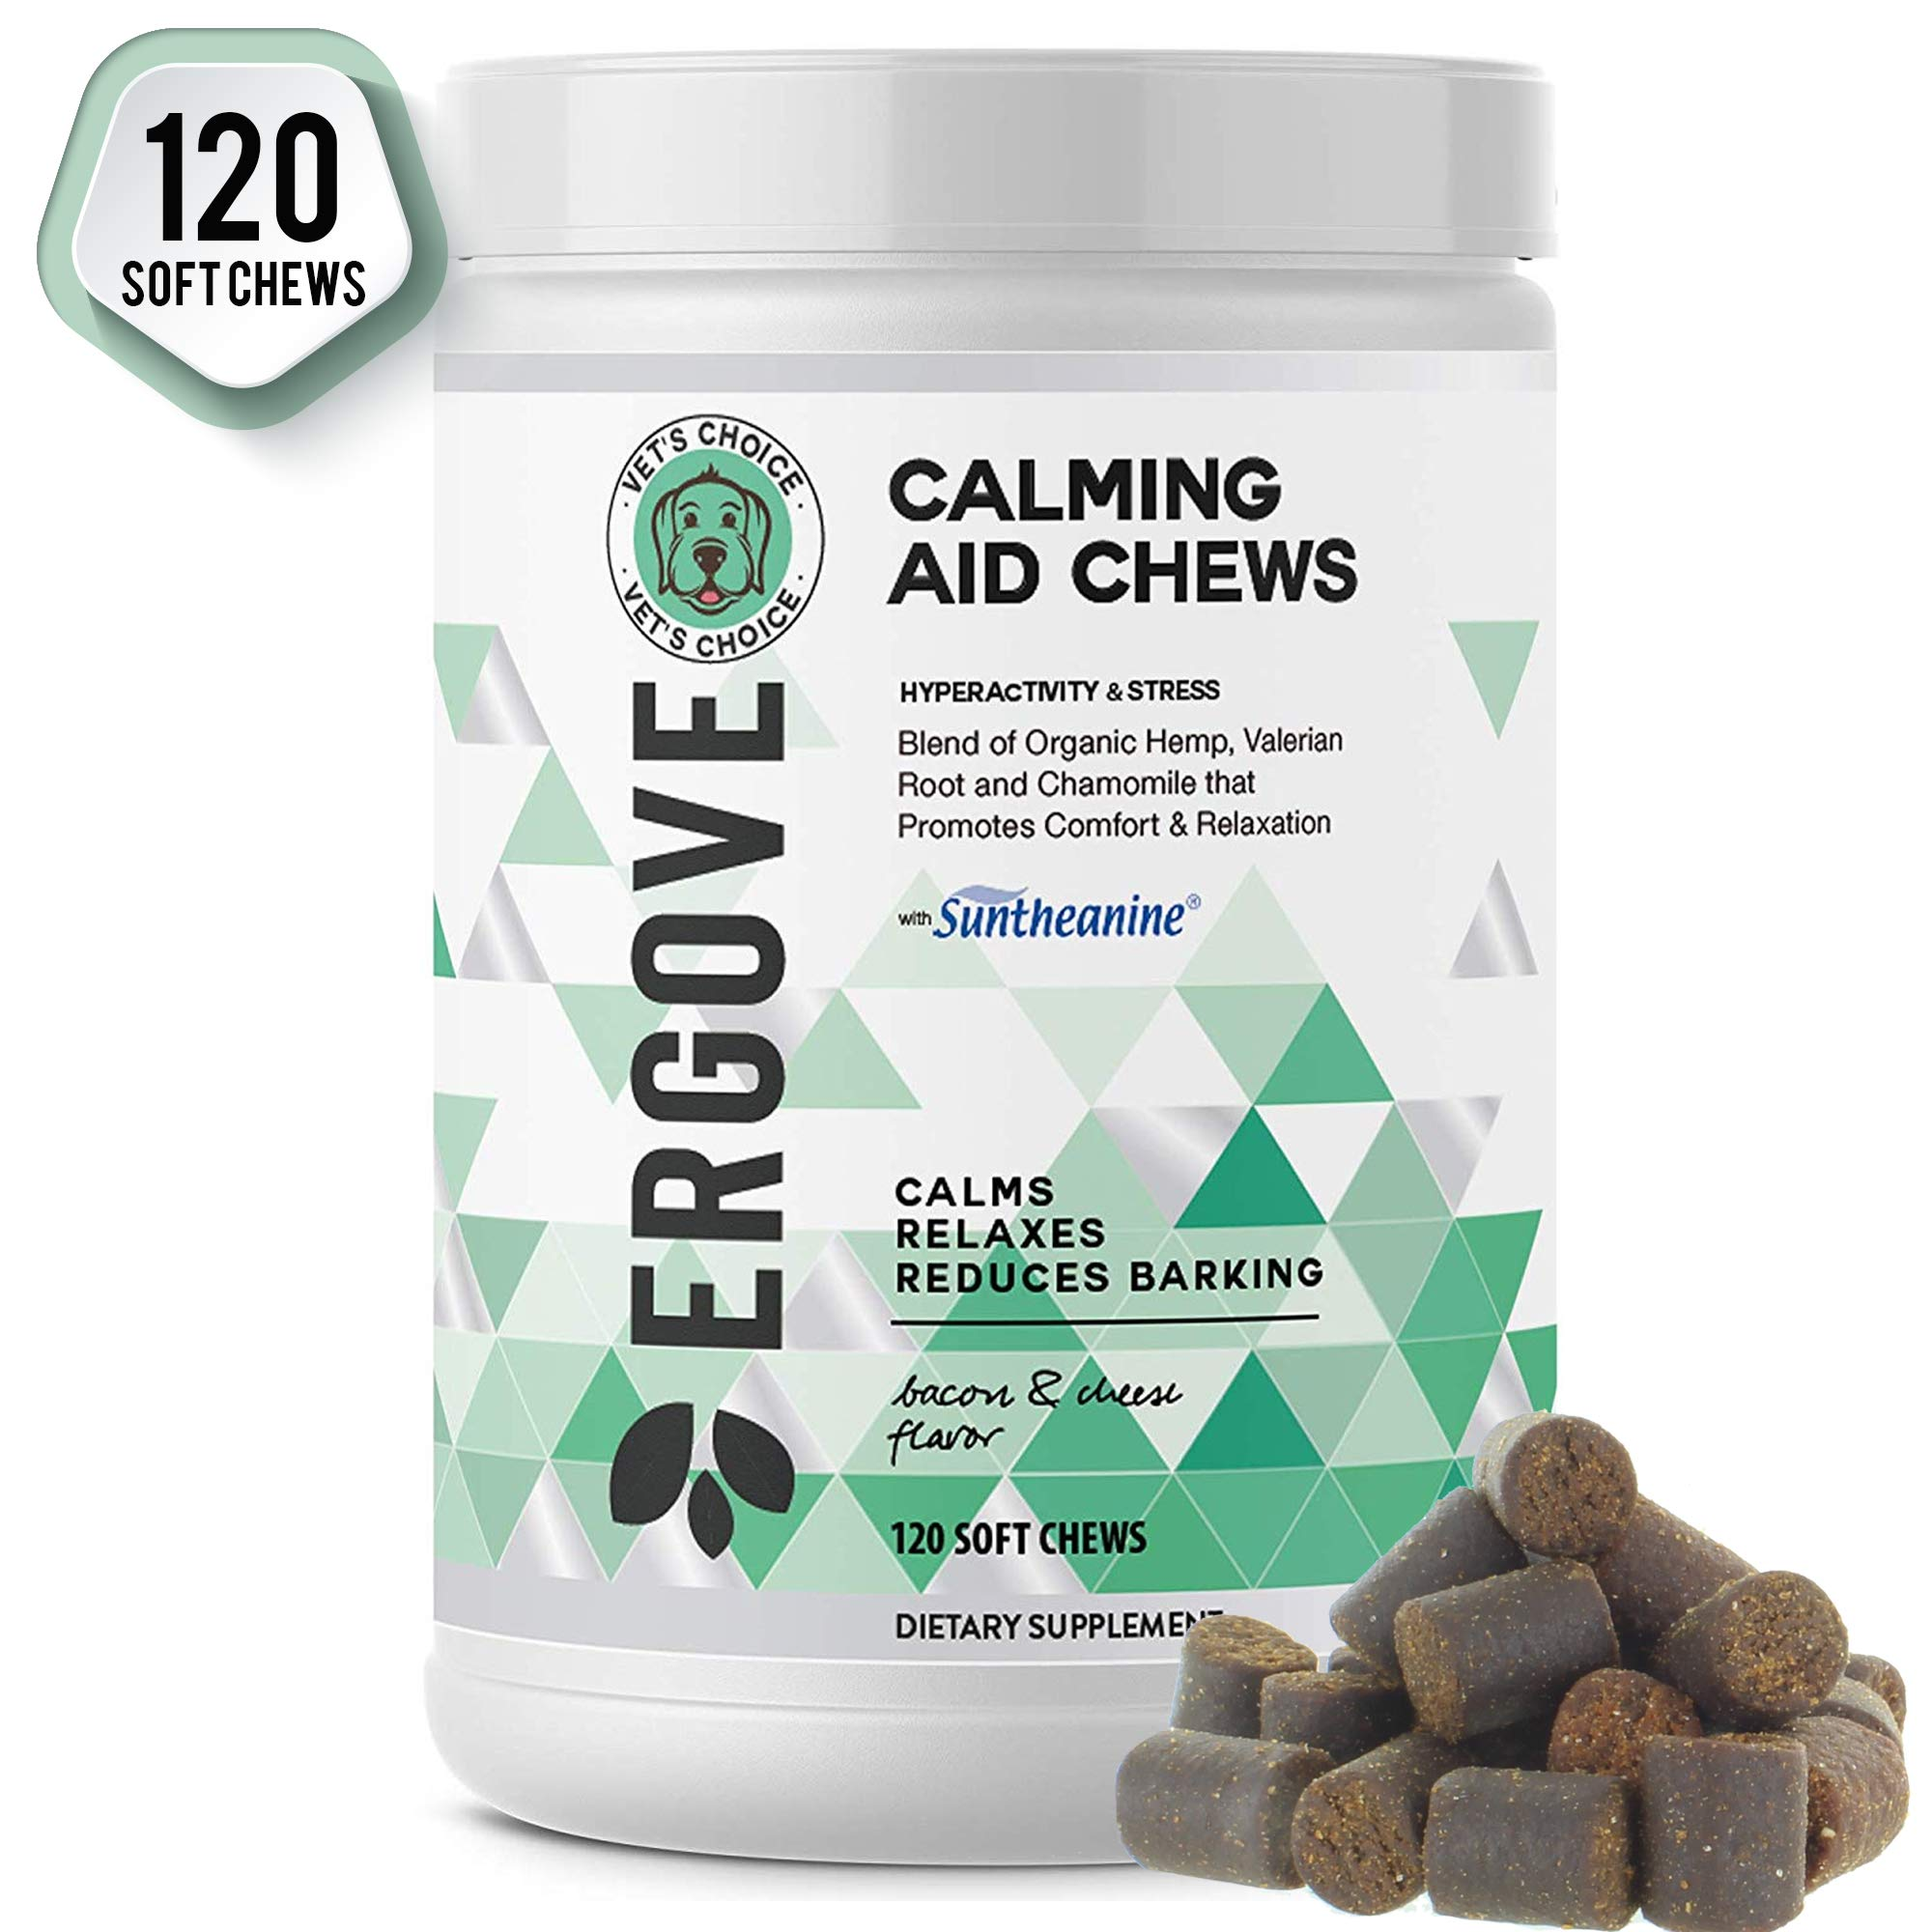 ERGOVE New Developed Formula Calming Aid Chews for Dogs - Anti-Anxiety & Stress Relief with Suntheanine - Vet Developed Breakthrough Formula Promotes Comfort & Relaxation - Made in USA - 120 Chews by ERGOVE